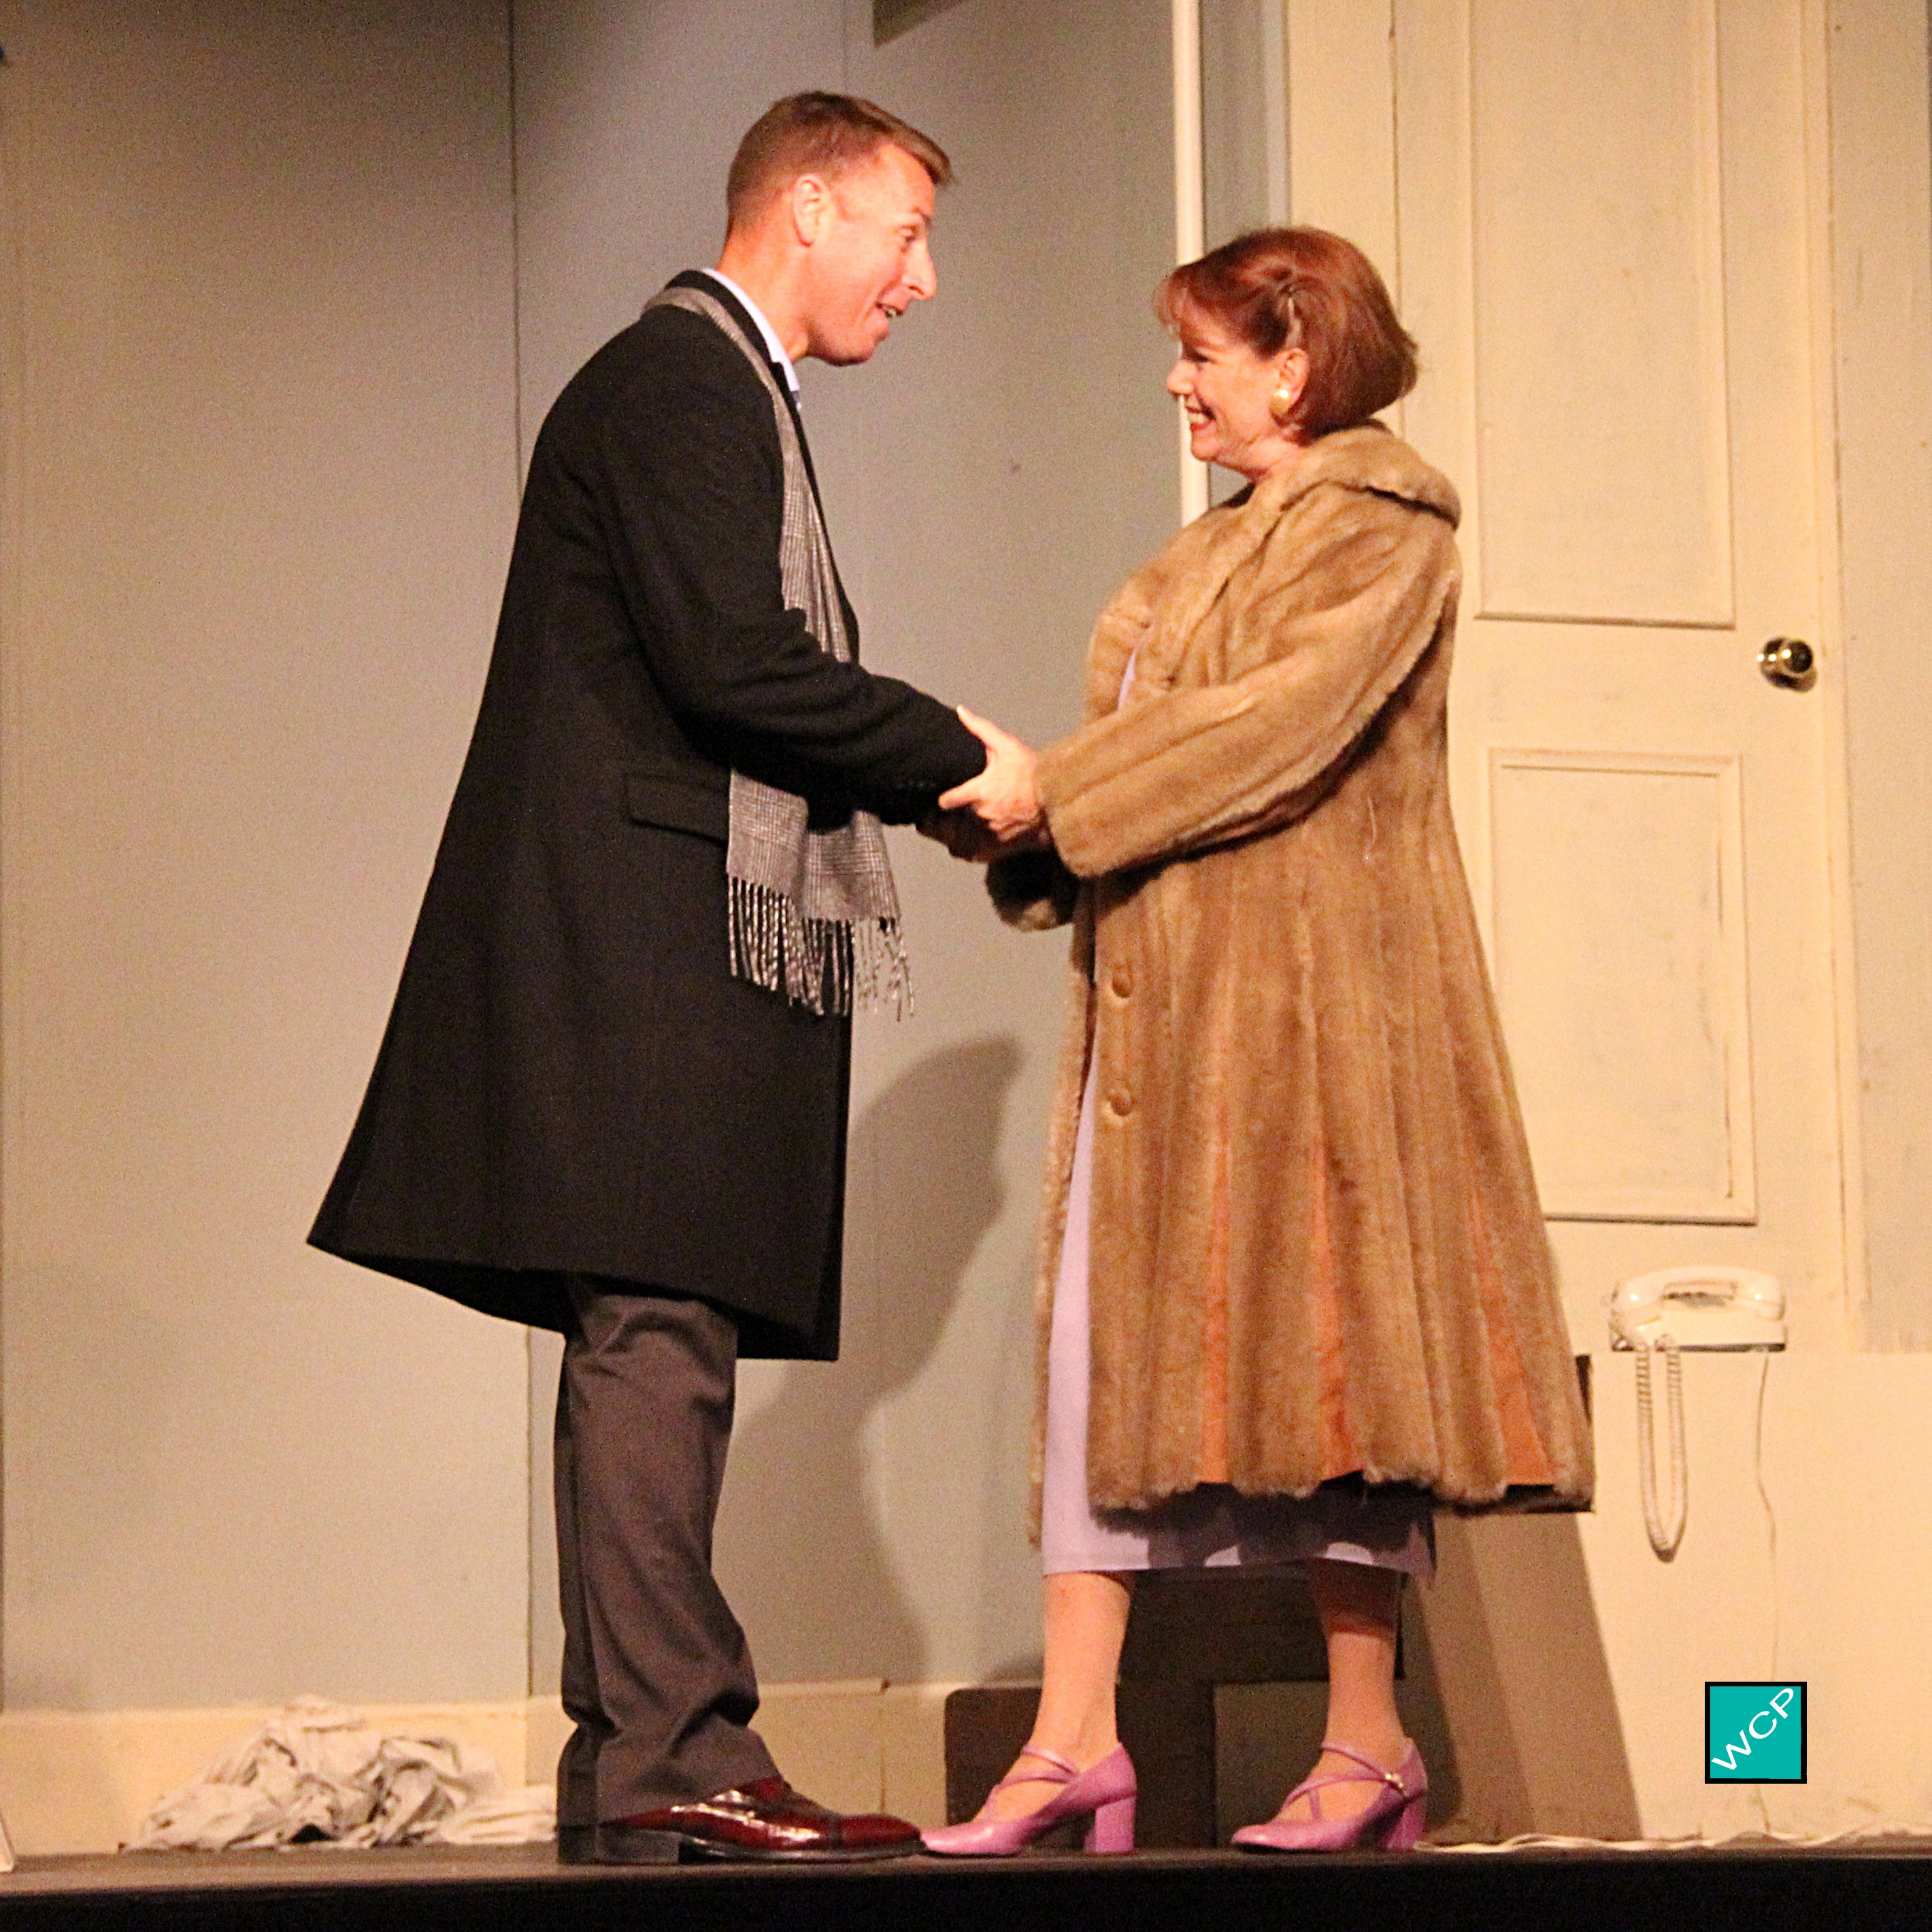 Brian Remo as Paul, Zita Geoffroy-Heinz as Mrs. Banks